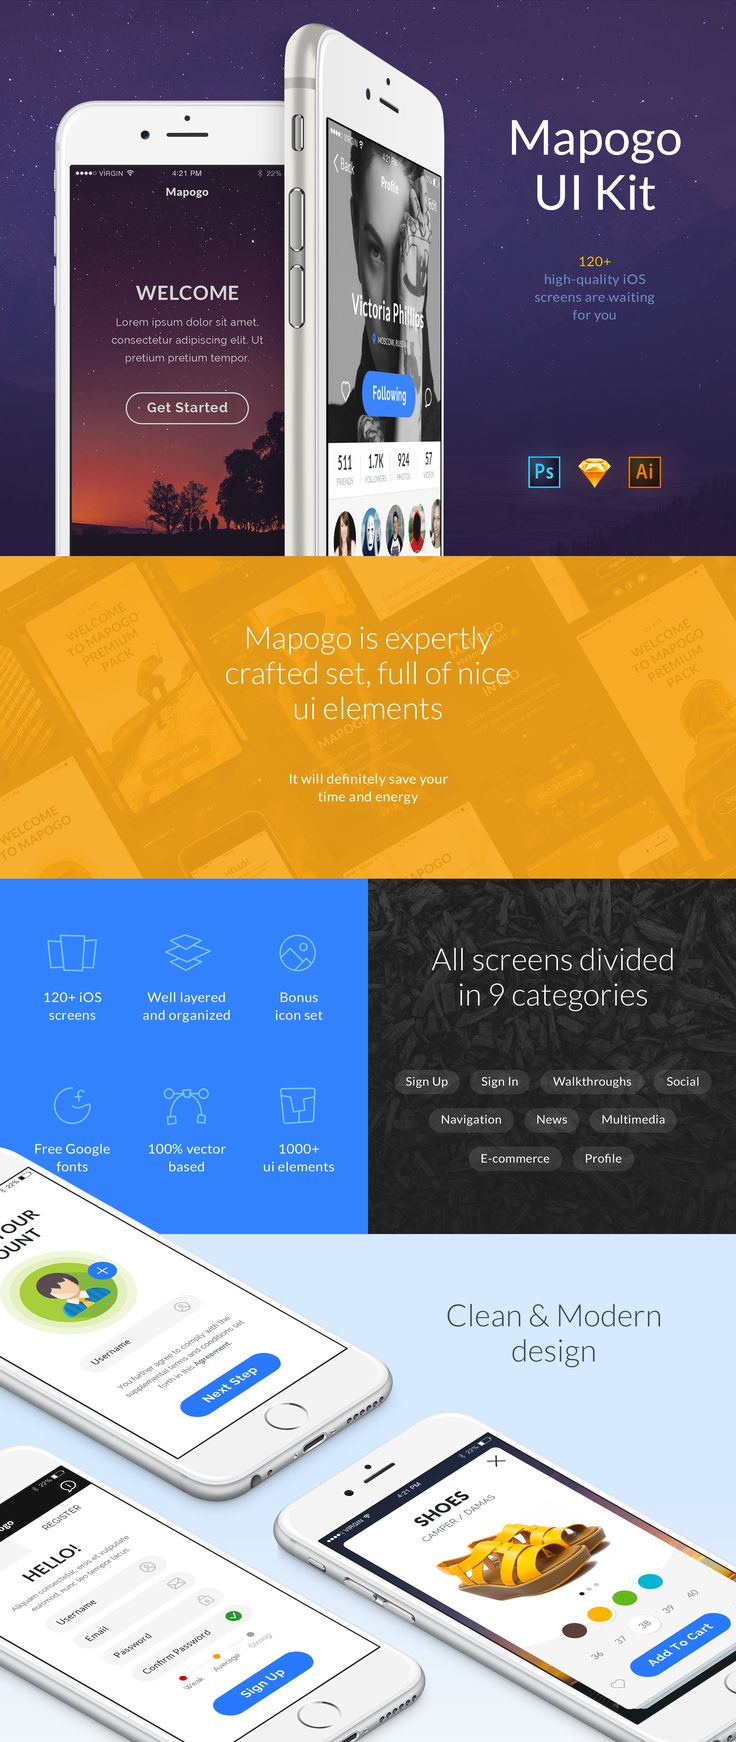 Mapogo is an expertly crafted set, full of nice UIelements. It is a perfect UI Kitfor designers and mobile app developers. All elements arewell organized into 120+ high-quality screens. All screens are divided in 9 categories;Sign in, Sign up, Walkthroughs, Navigation, Social, News, Profile, Multimedia, E-commerce,and carefully assembled in Sketch, Illustrator and Photoshop.  It is worth noting that Mapogo is flexible pack, made with hundreds of elements and objects. And so designing…